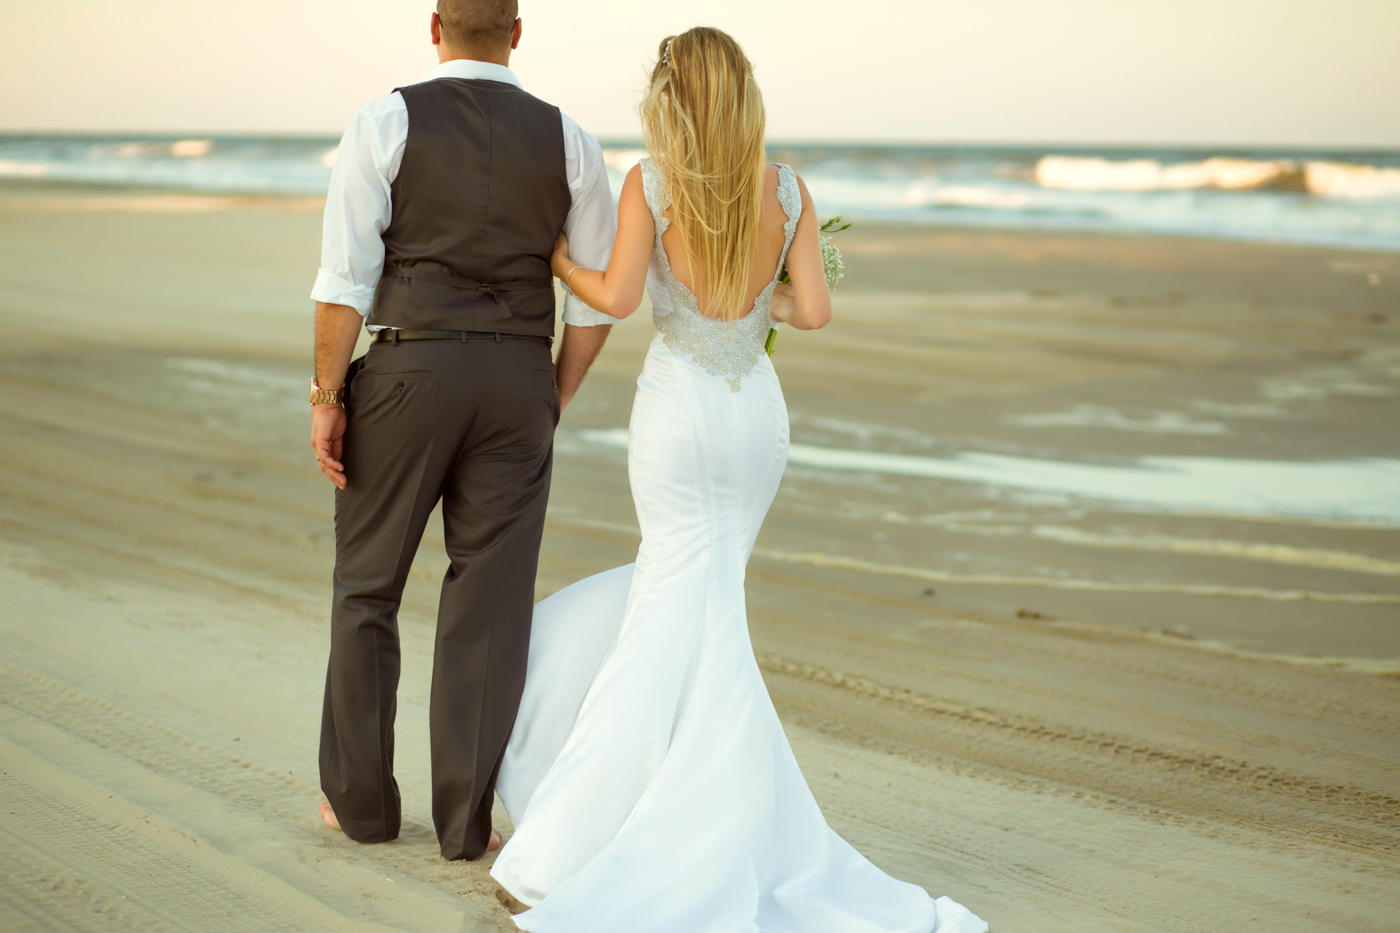 Beautiful Brazilian Beach Wedding North Carolina-Ksenia-Pro-Photography-49